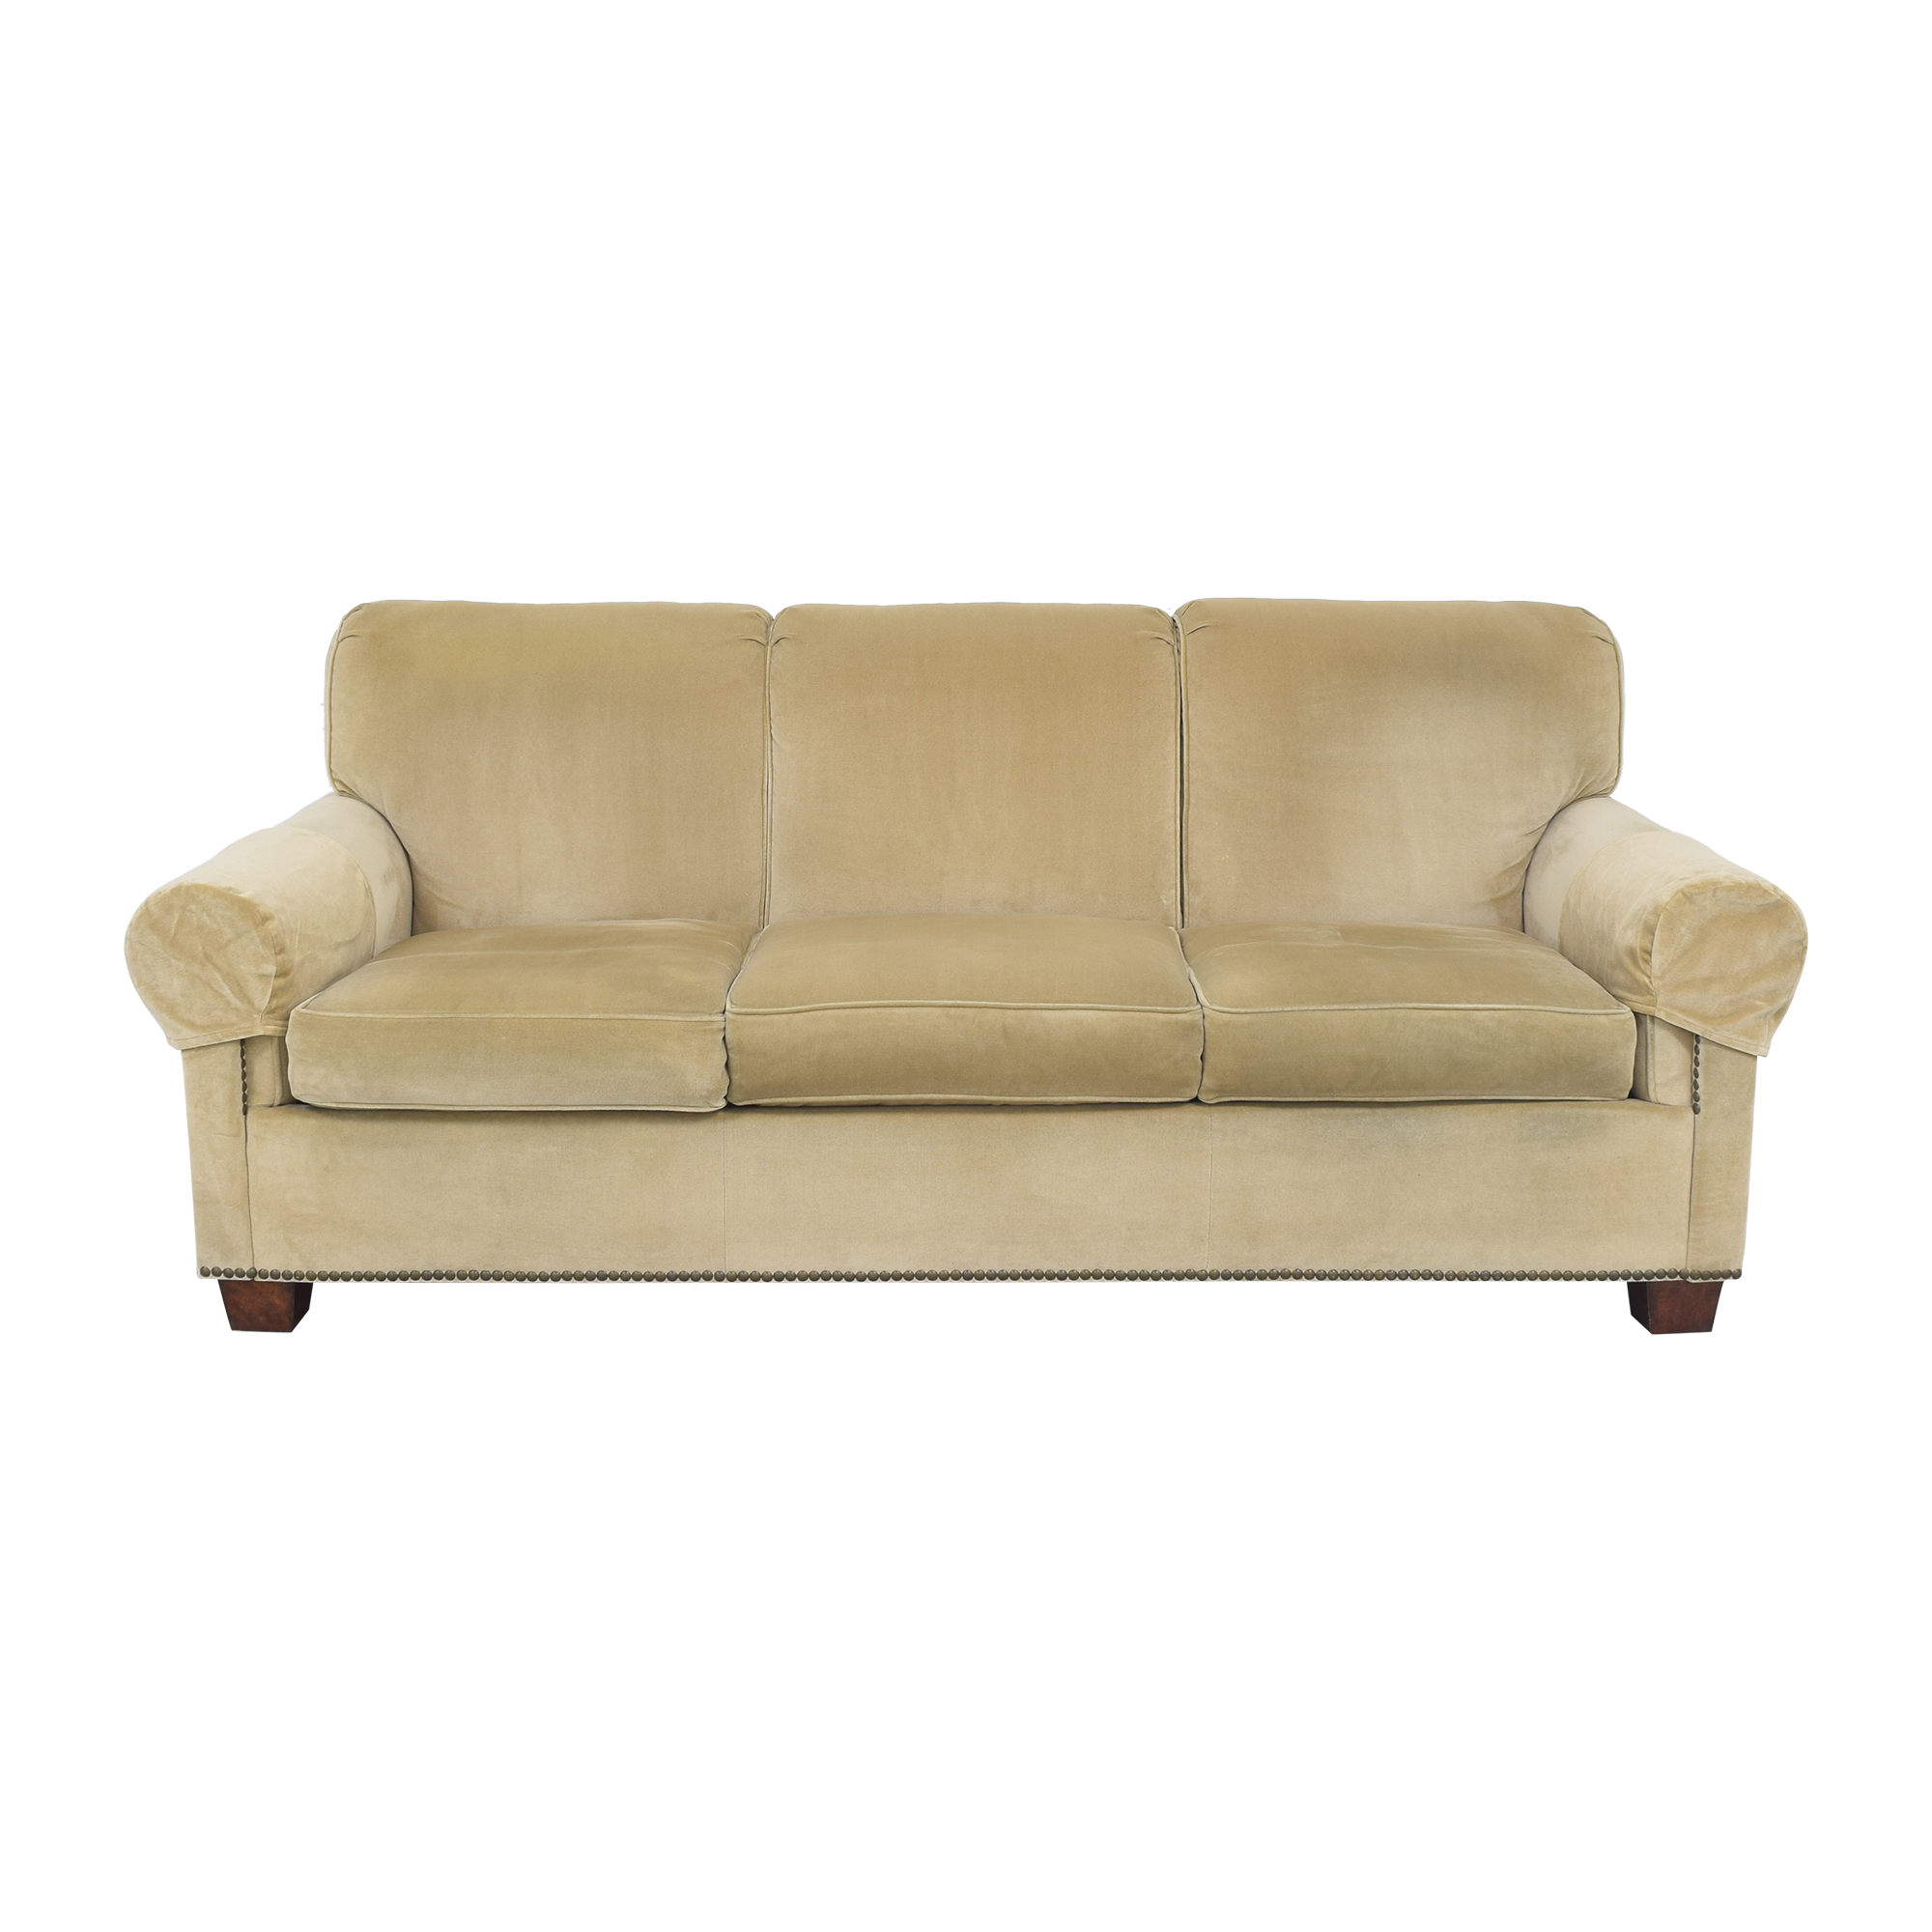 Hickory Chair Hickory Chair Sunbrella Three Cushion Sofa ma